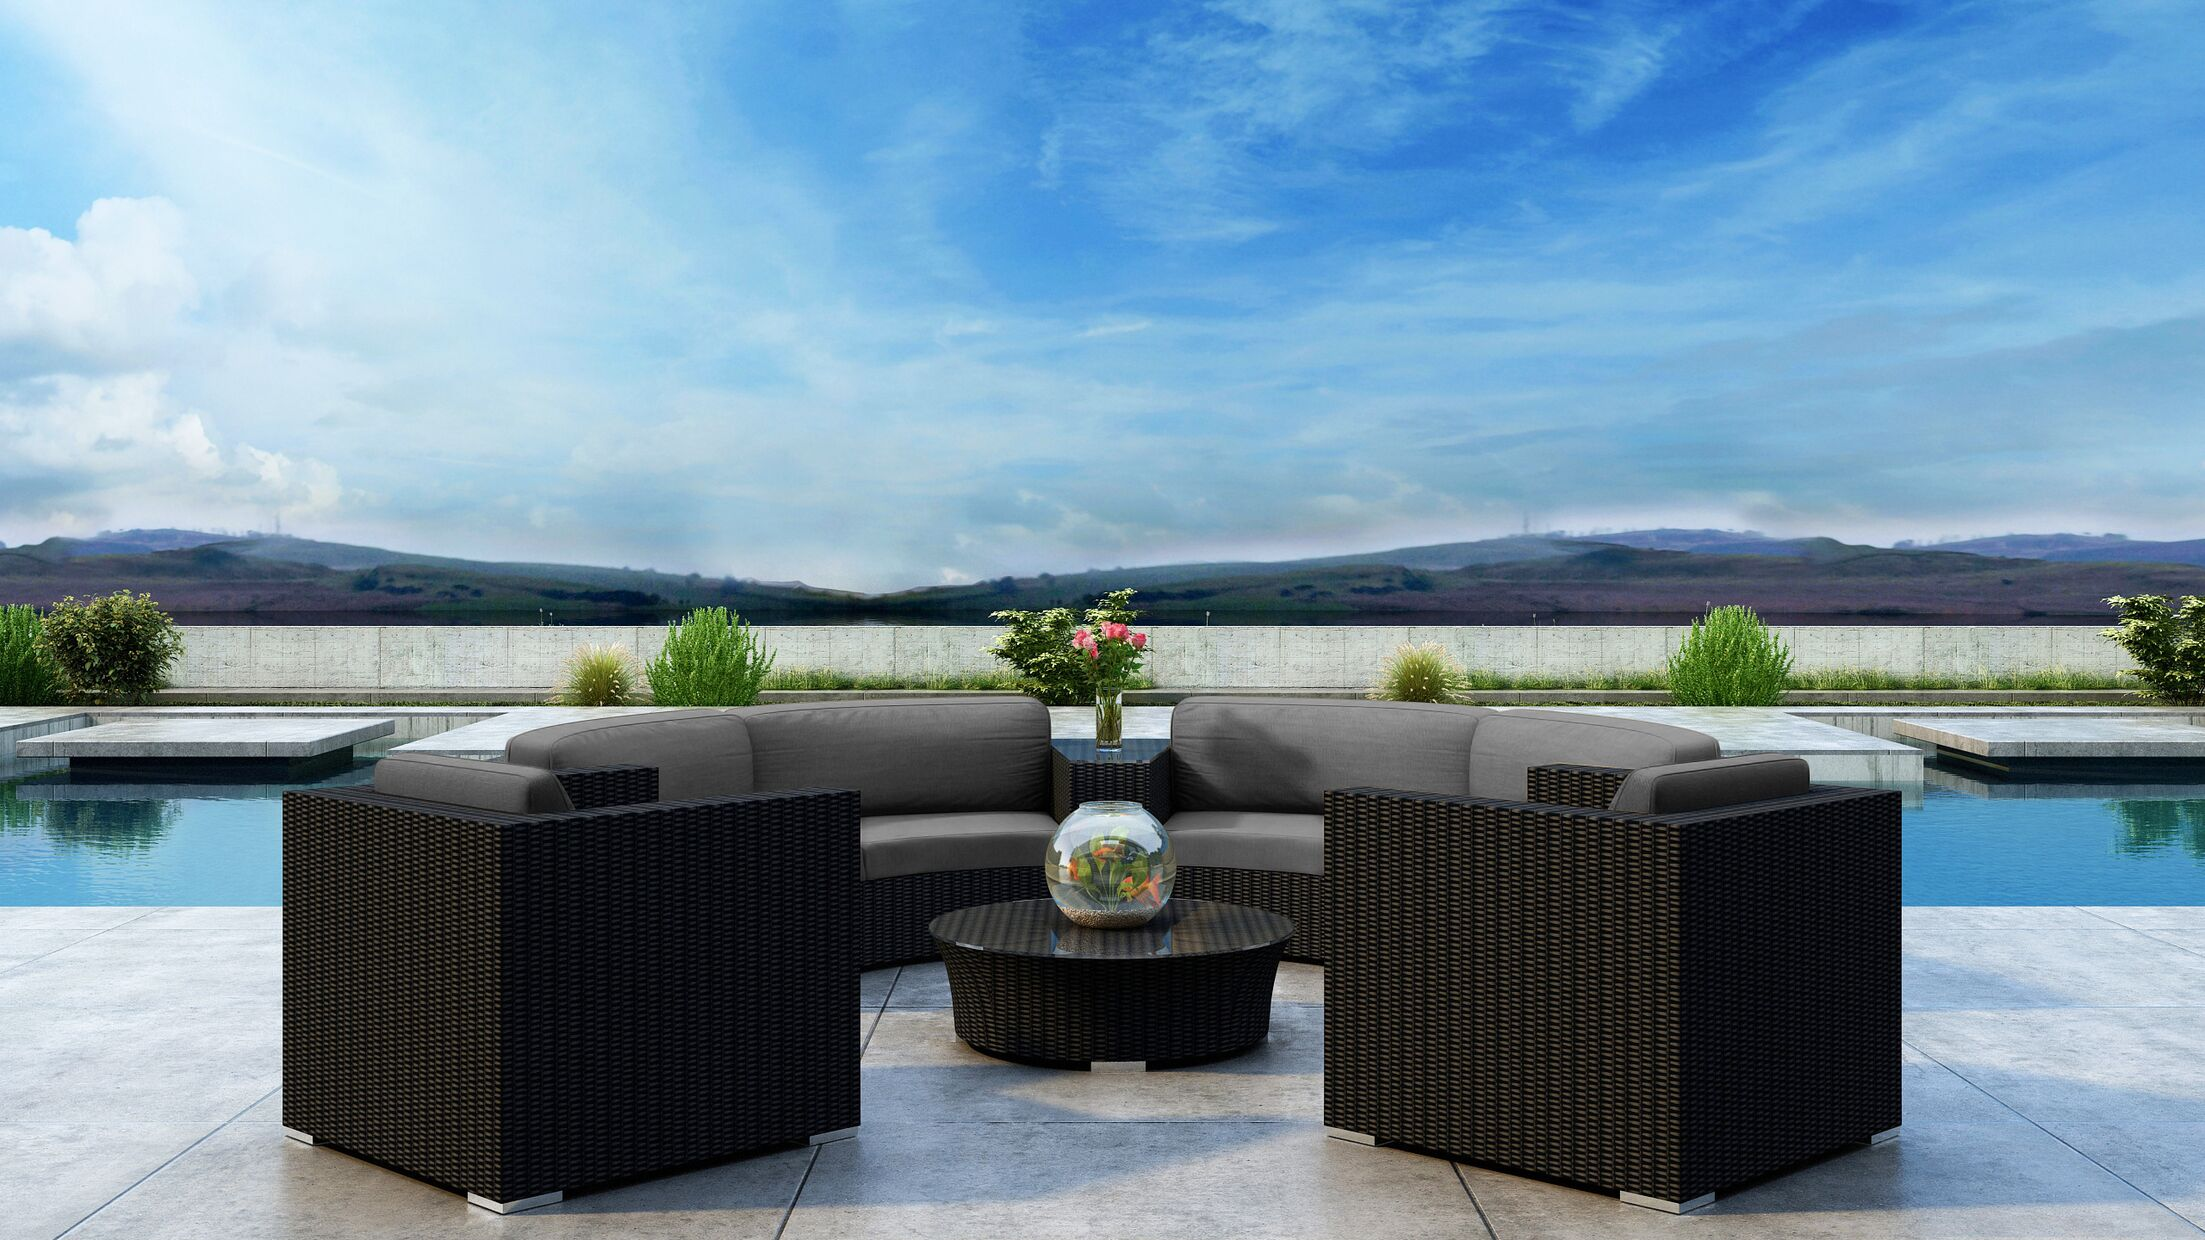 Glendale 6 Piece Sectional Set with Sunbrella Cushion Frame Finish: Coffee Bean, Cushion Color: Canvas Charcoal